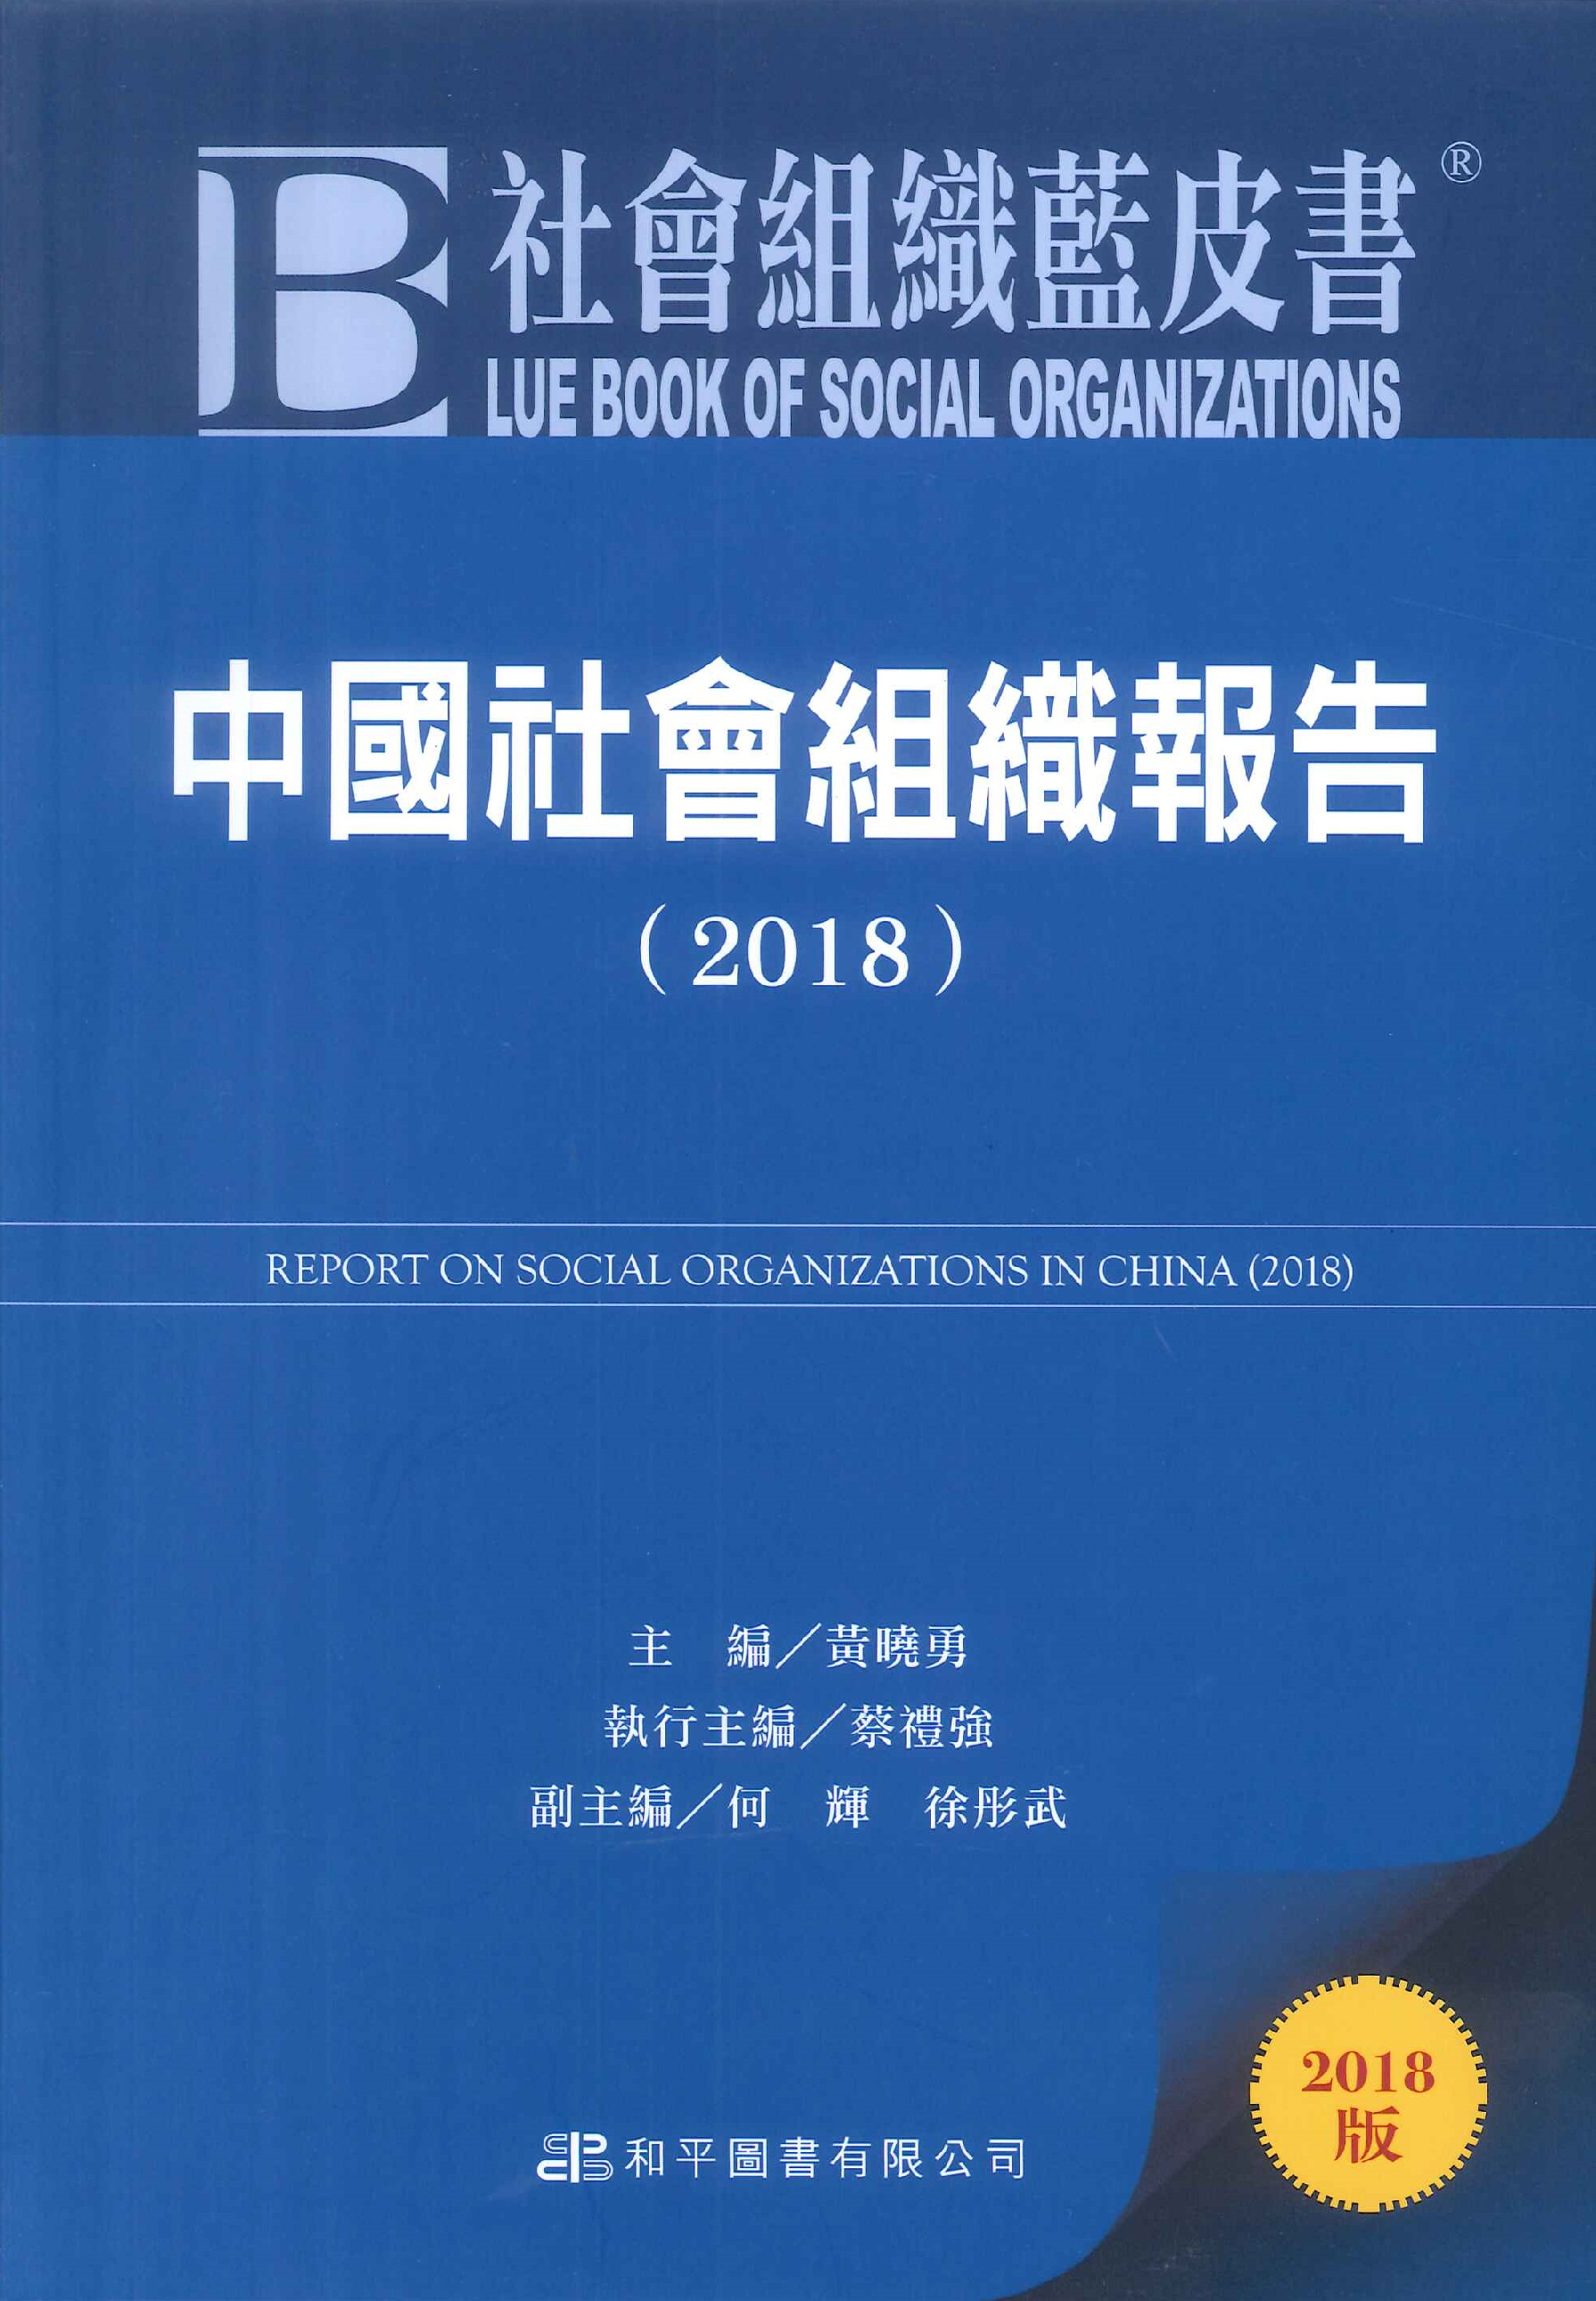 中國社會組織報告.2018=Report on social organizations in China